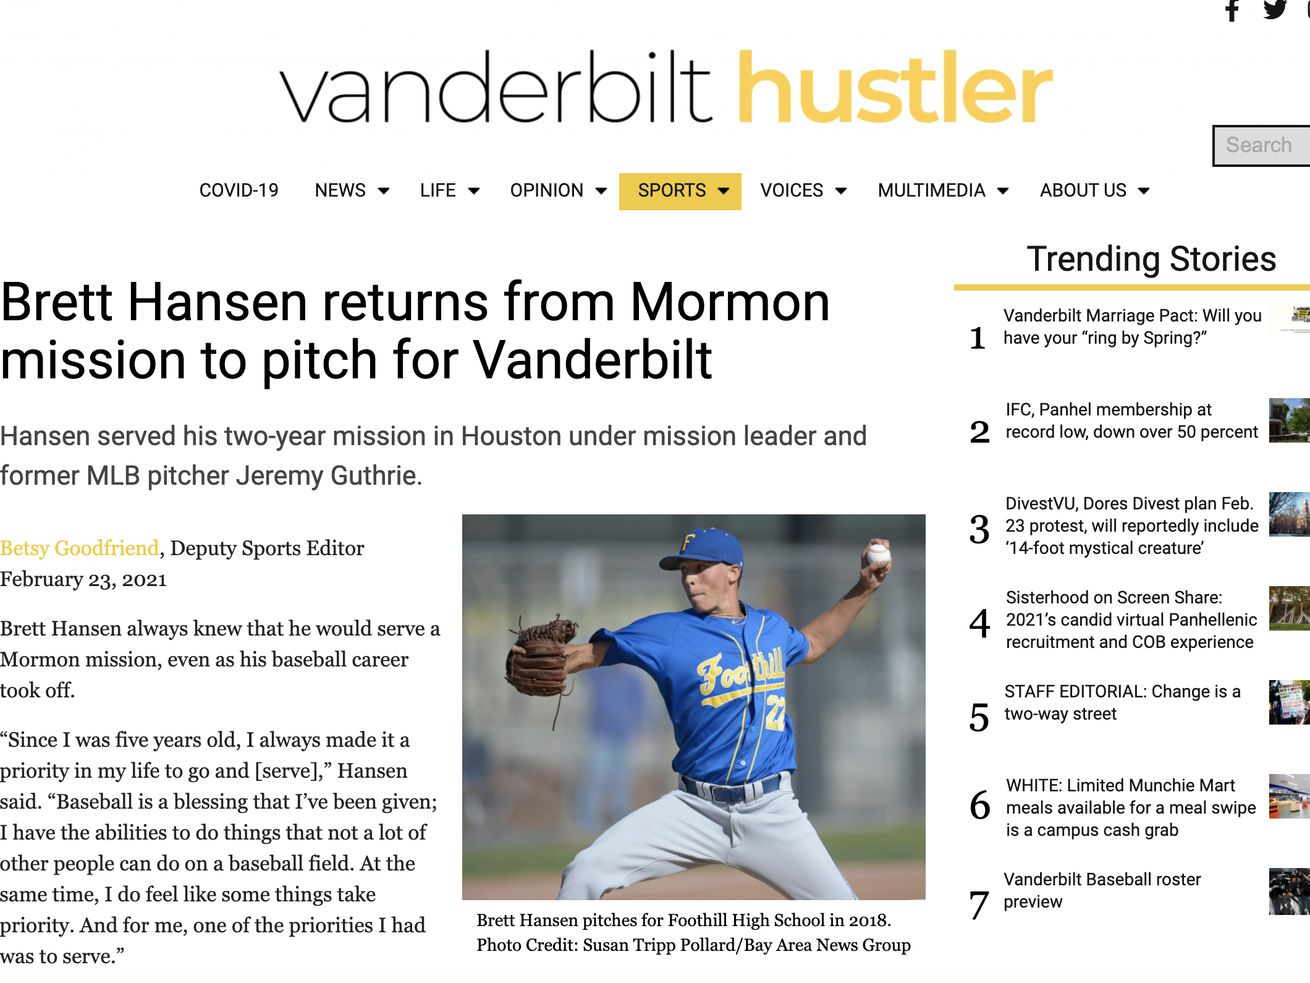 An elite pitching prospect is back from a Latter-day Saint mission